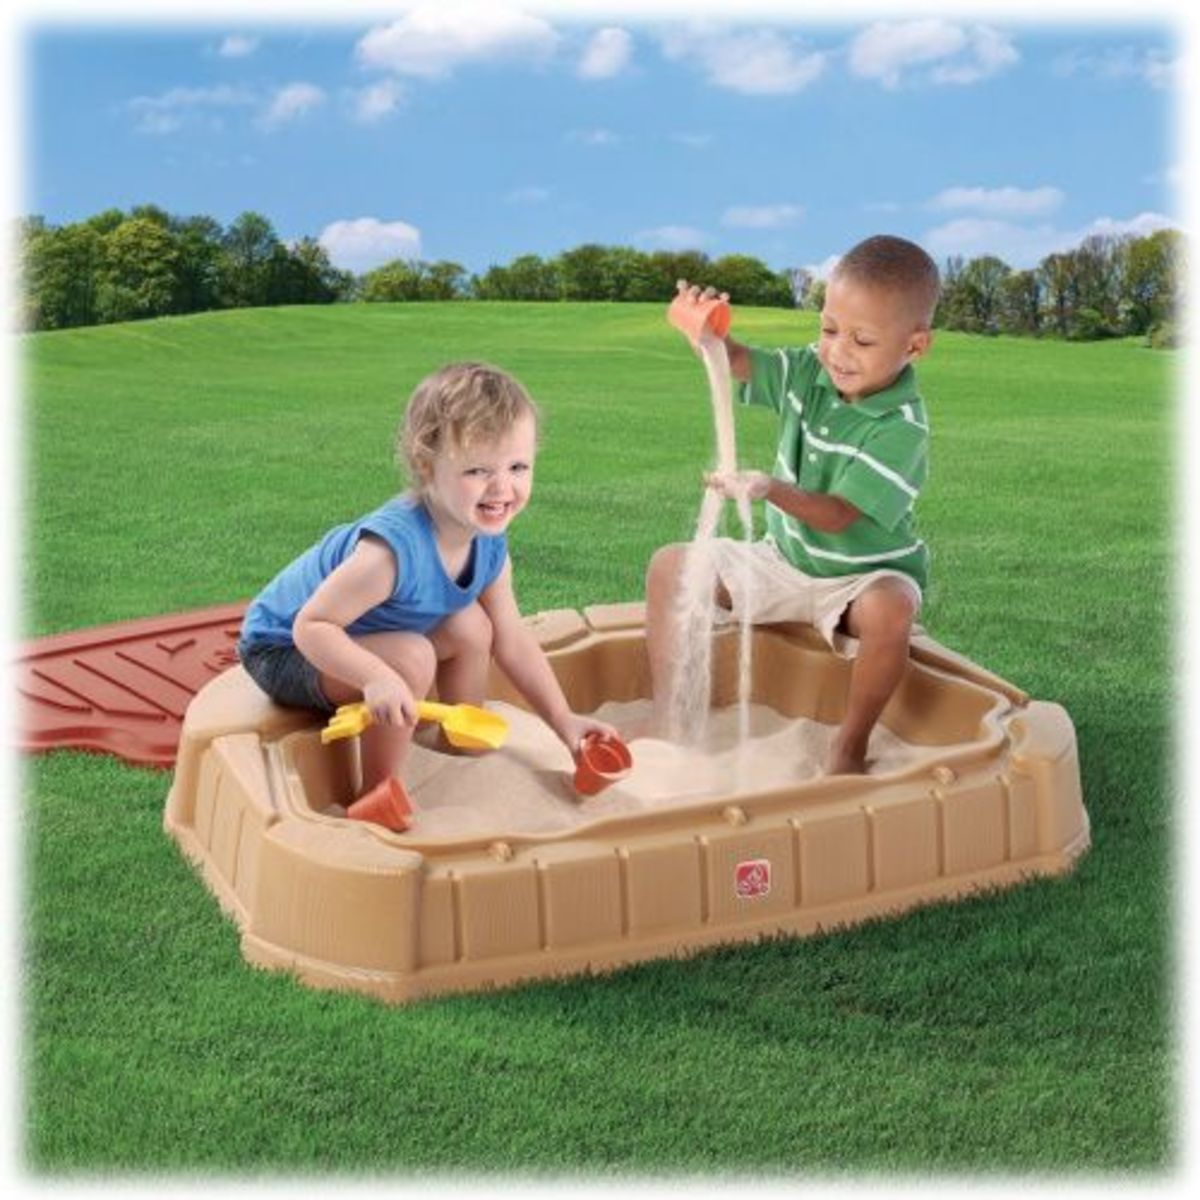 Popular Outdoor Toys For Toddlers : Best outdoor toys for toddlers your kid will love them